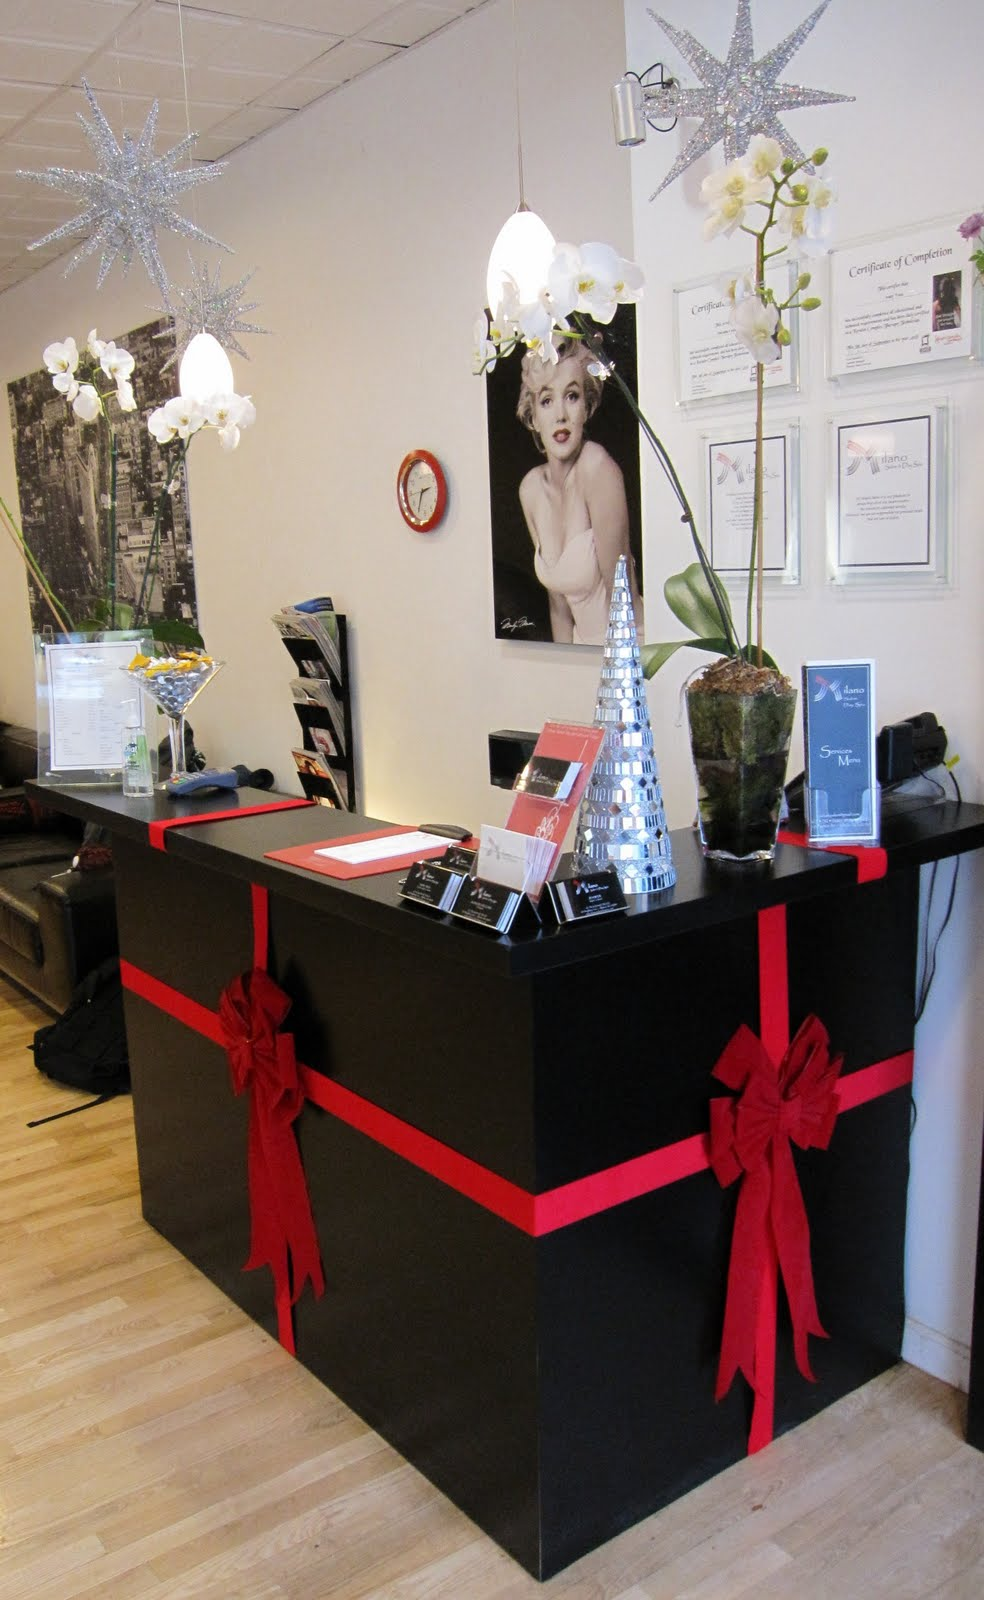 milano salon day spa holiday cheer november 2009